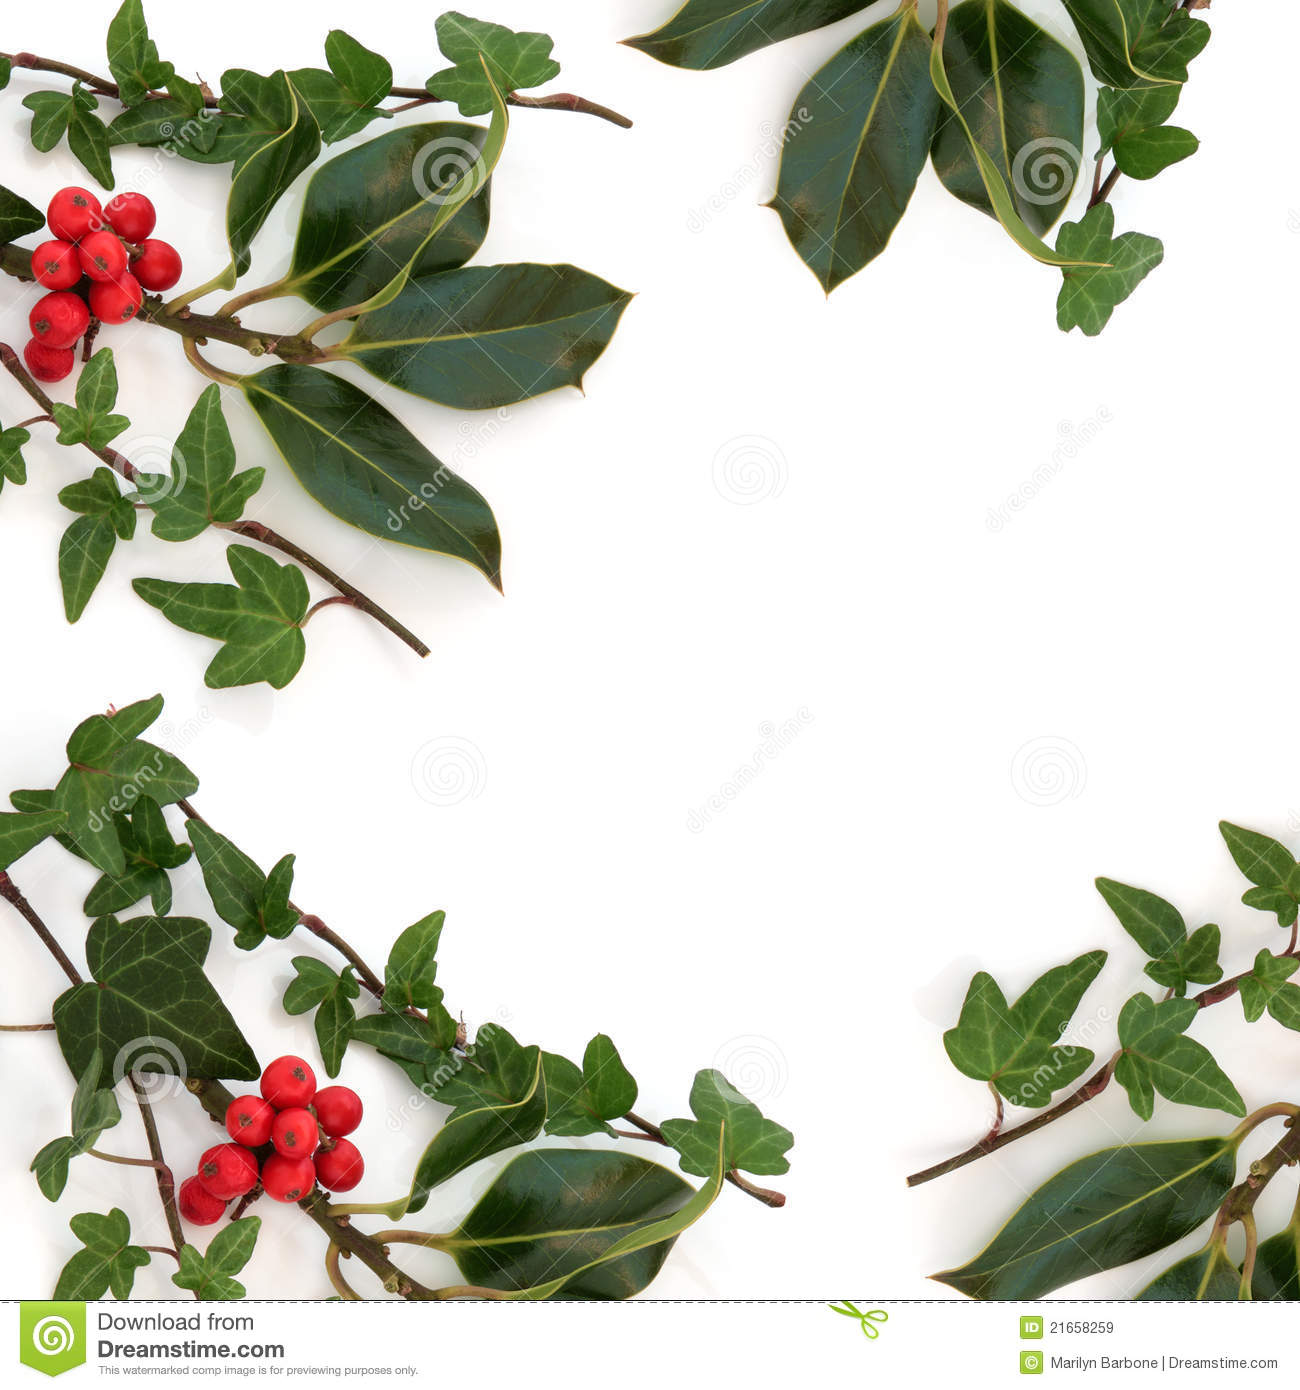 holly and ivy border stock image image of xmas winter 21658259